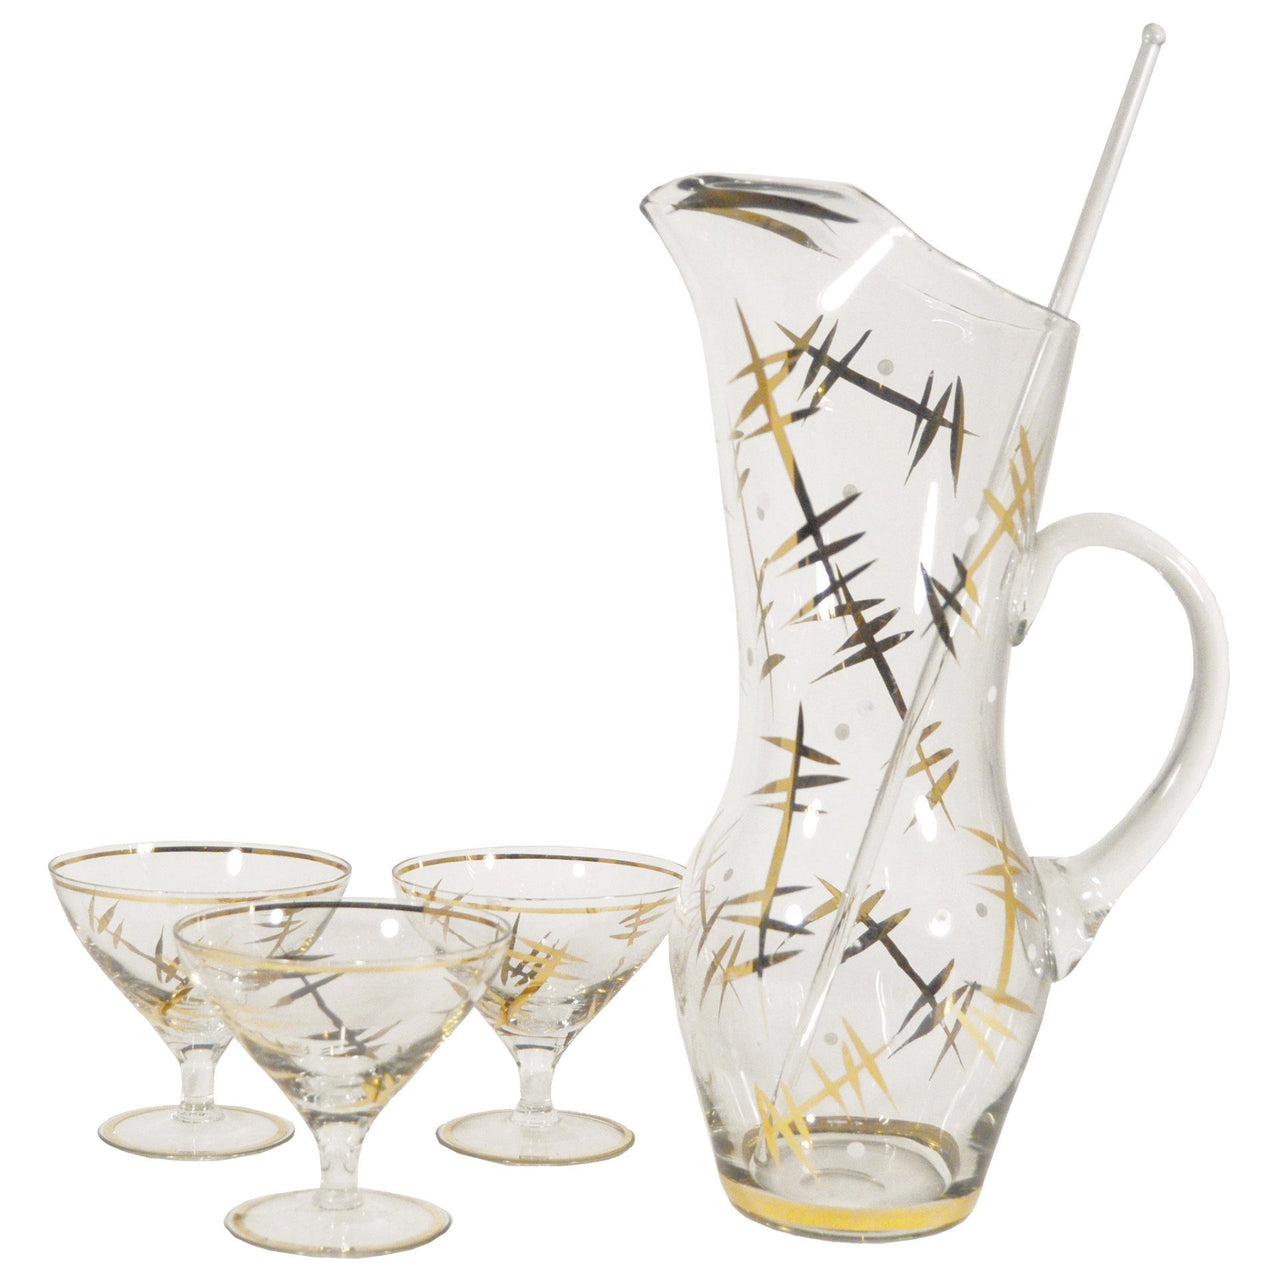 Cocktail Pitcher Coupe Glass Set Vintage Barware The Hour Shop